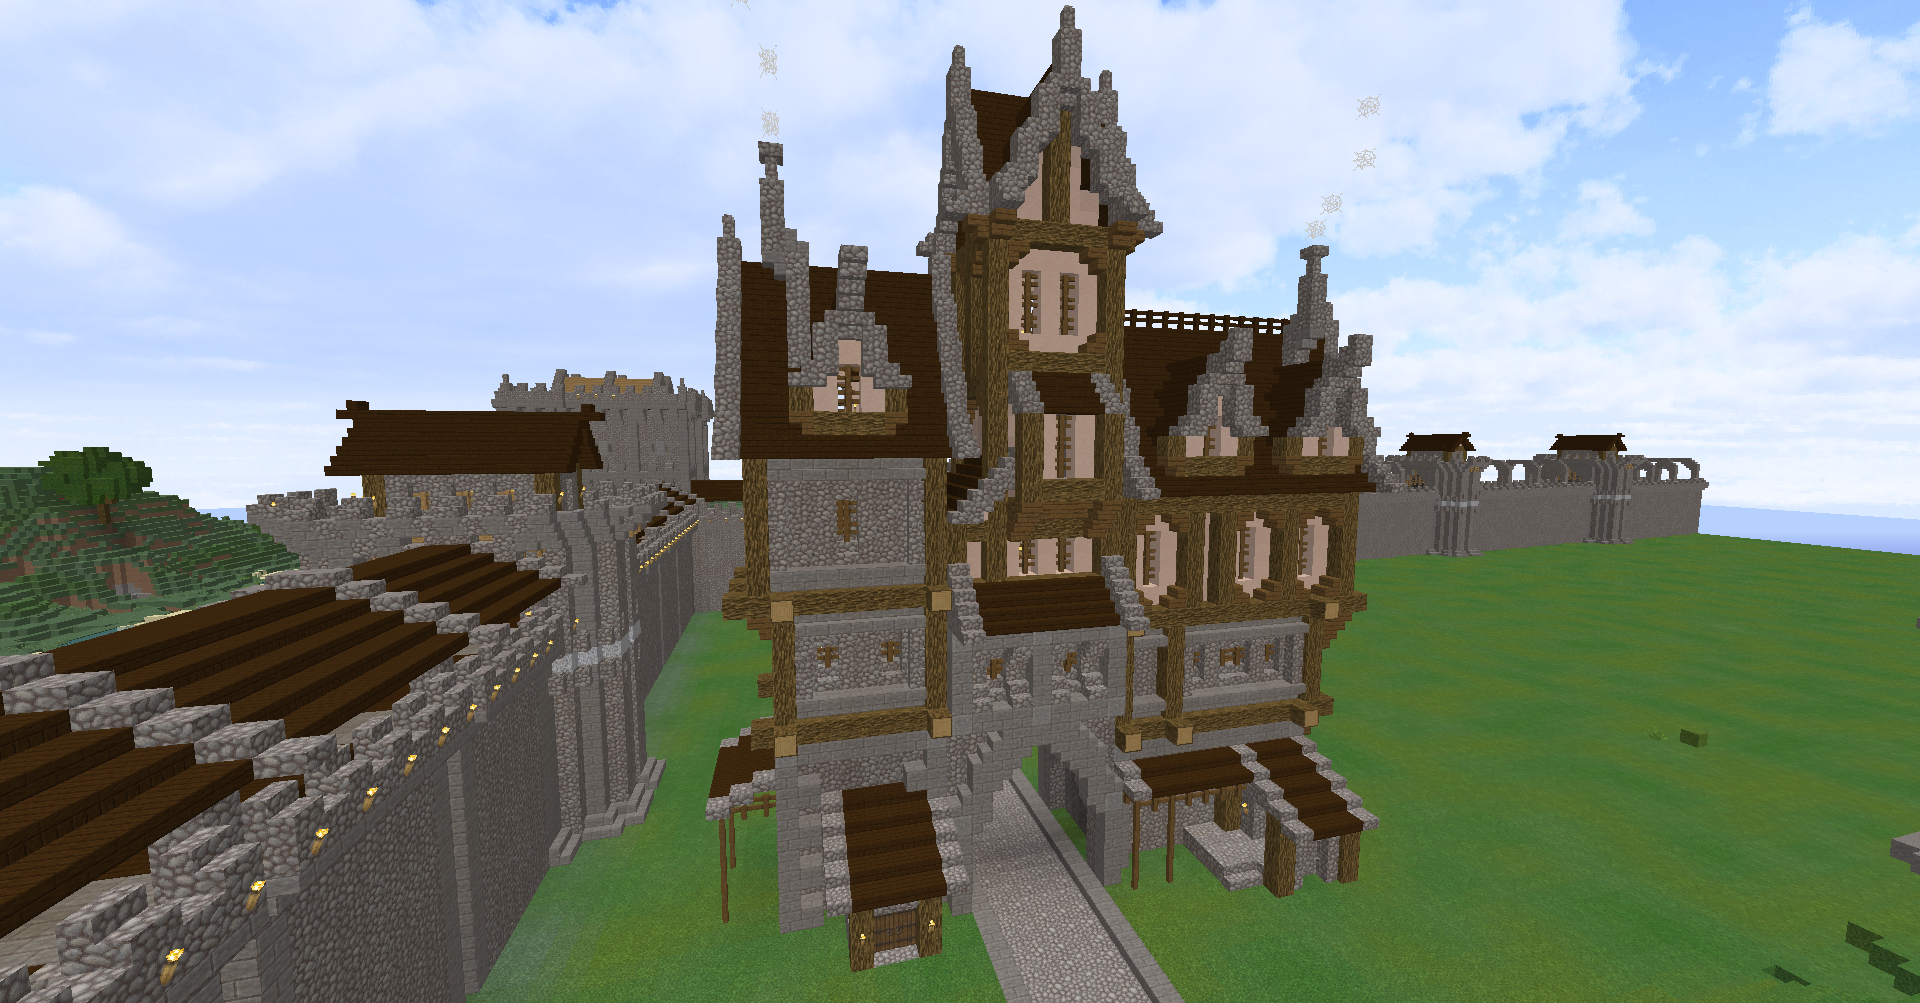 Fantasy Style Minecraft House With An Arch In The Middle Created